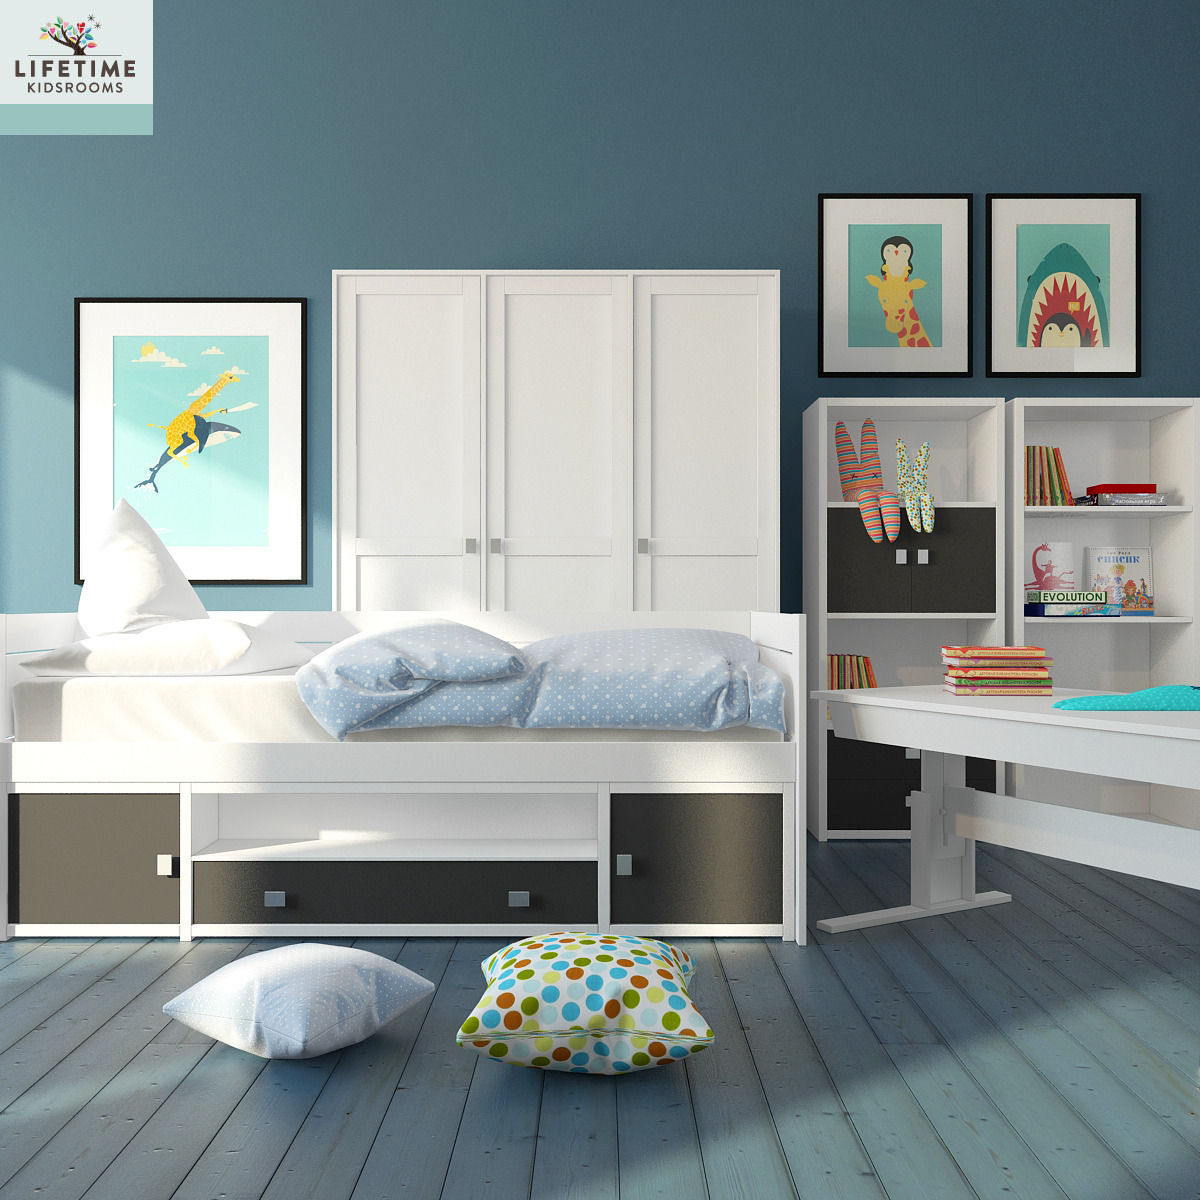 Kid Bedroom 3d Model Max 1